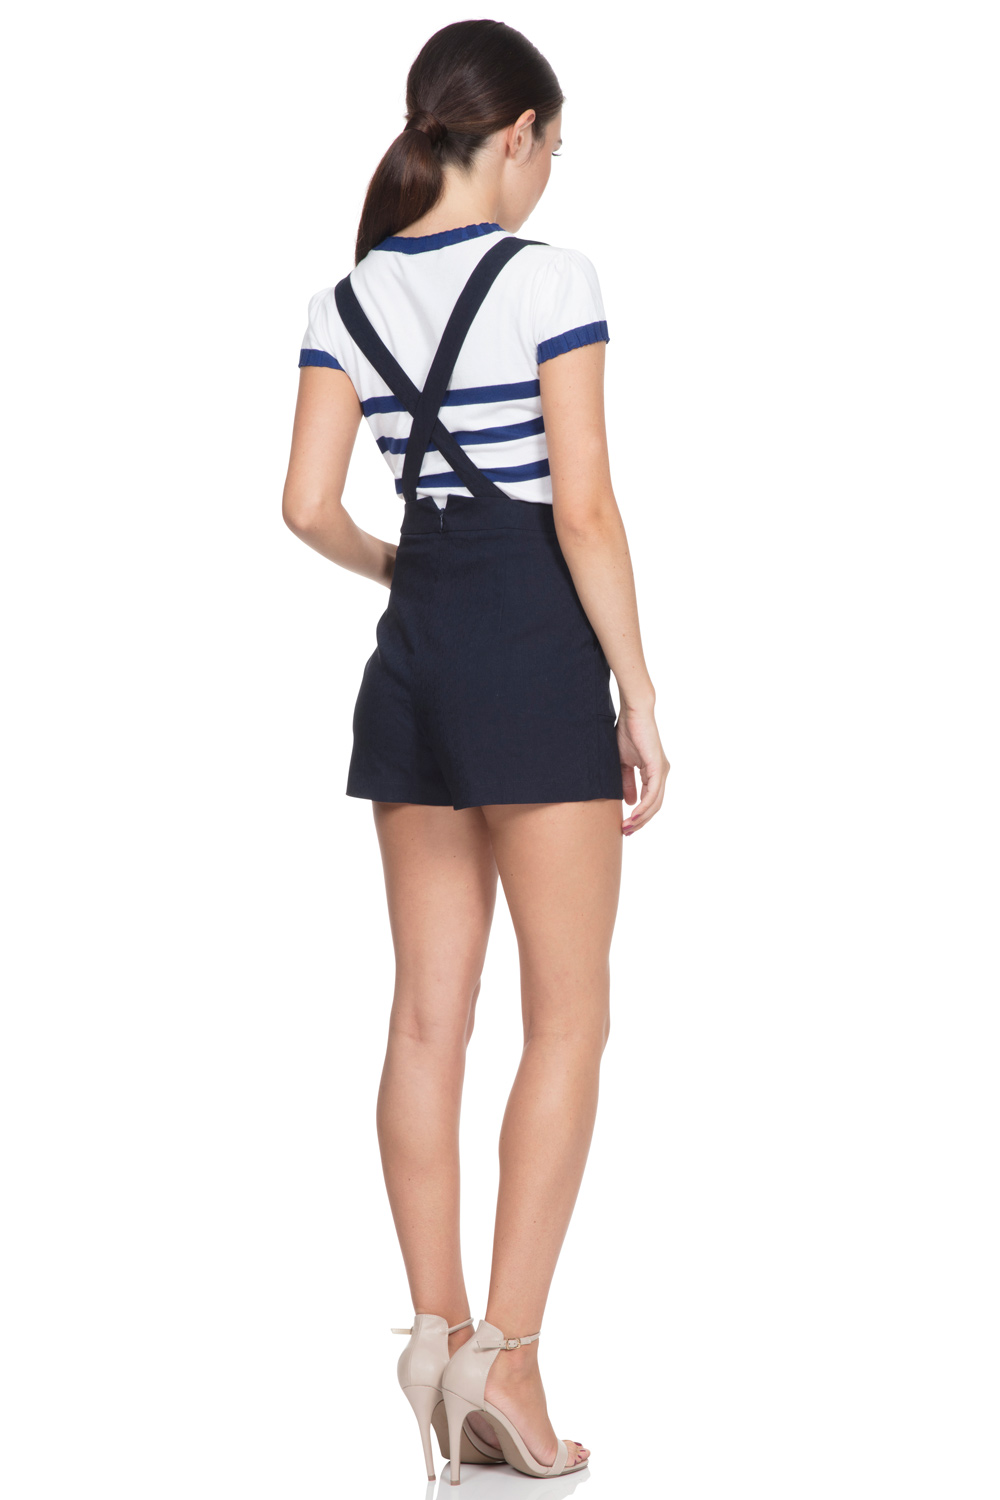 Daisy Nautical Shorts with Braces